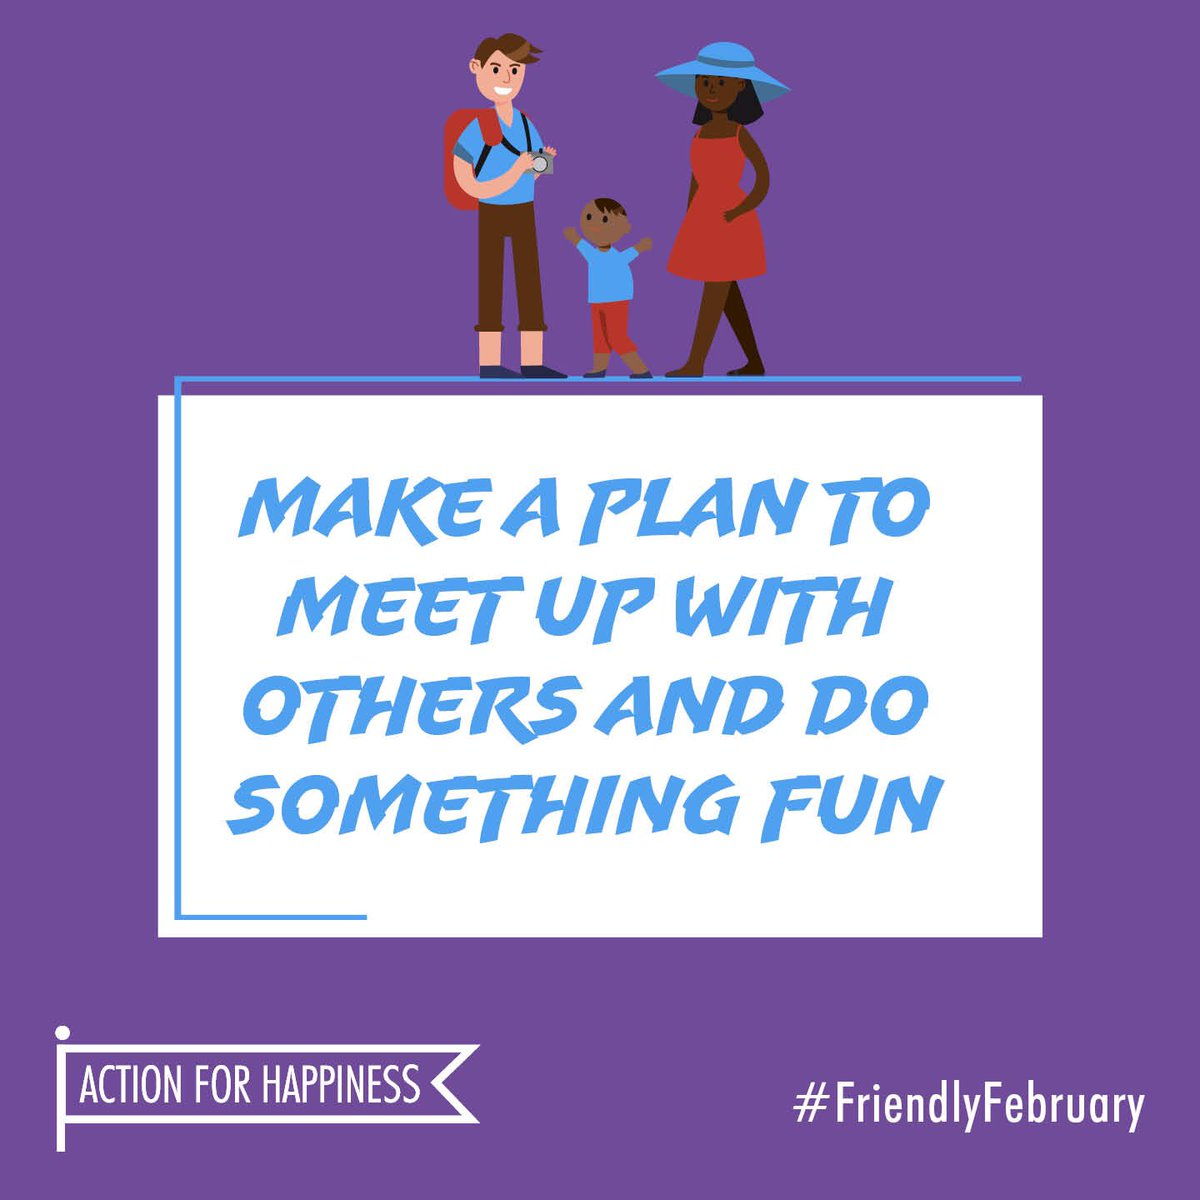 Friendly February - Day 22: Make a plan to meet up with others and do something fun actionforhappiness.org/friendly-febru… #FriendlyFebruary